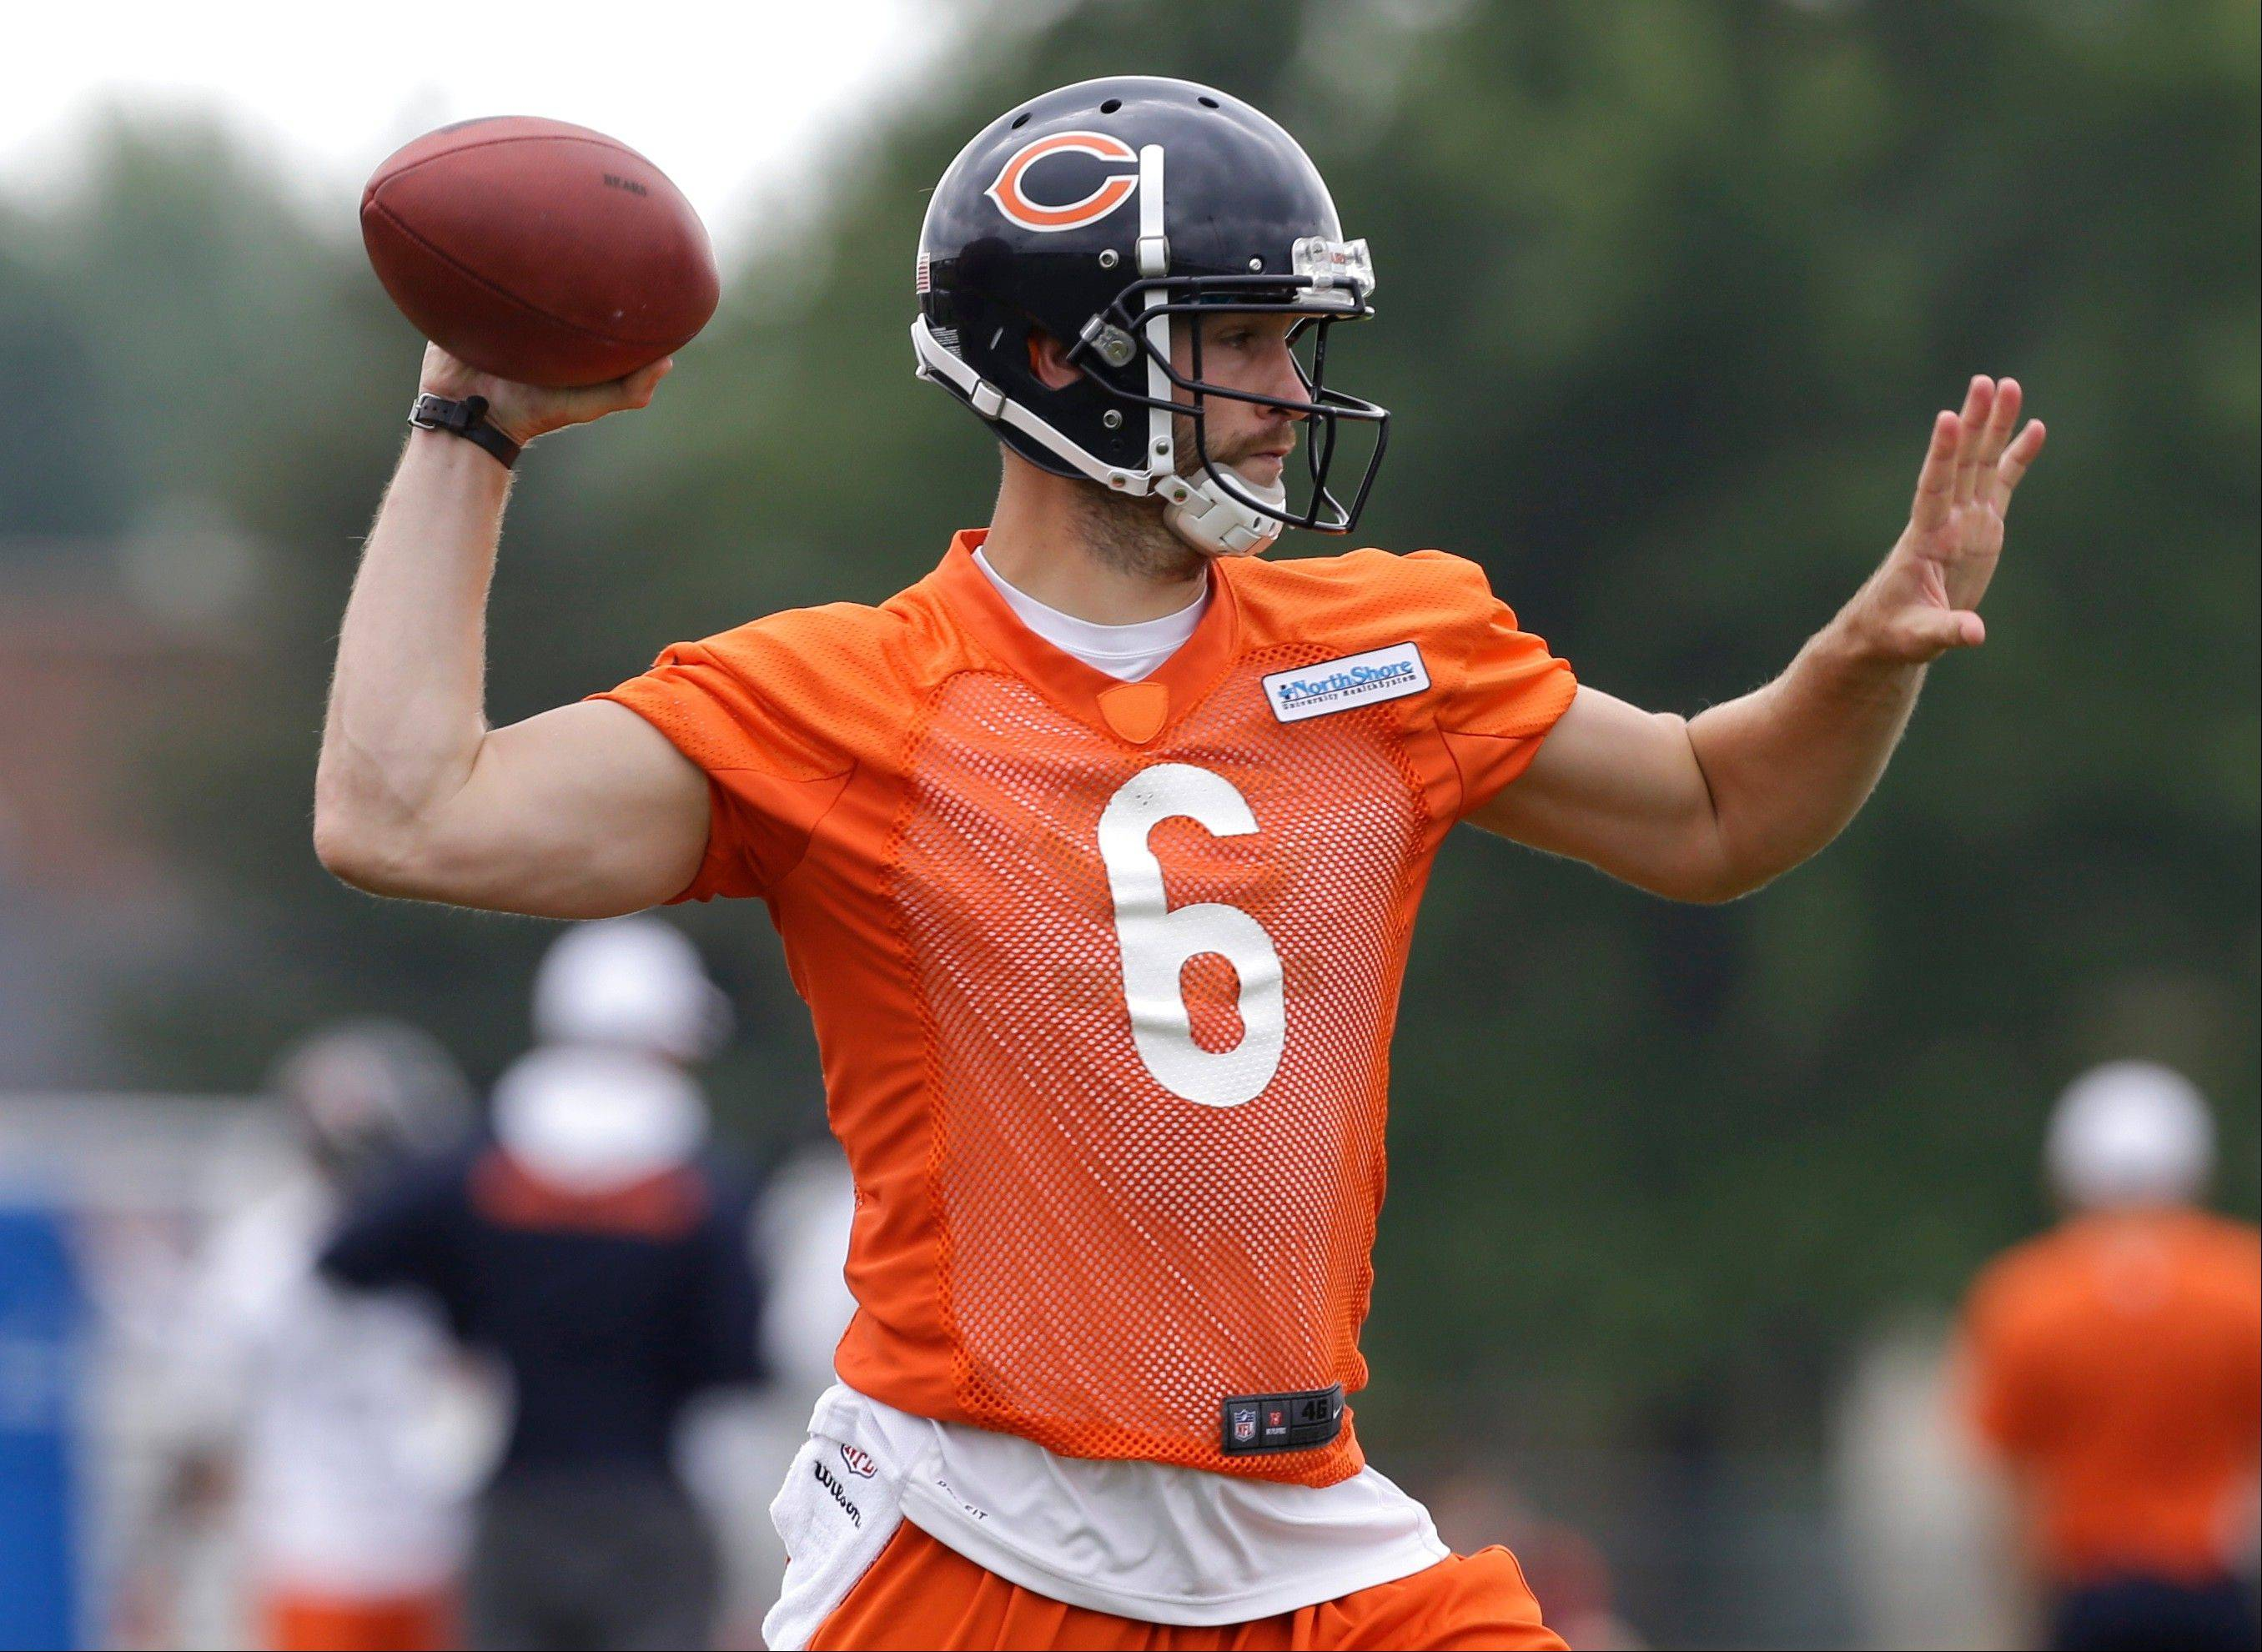 Jay Cutler looks to a pass during NFL football training camp Saturday, July 27, 2013, at Olivet Nazarene University in Bourbonnais.